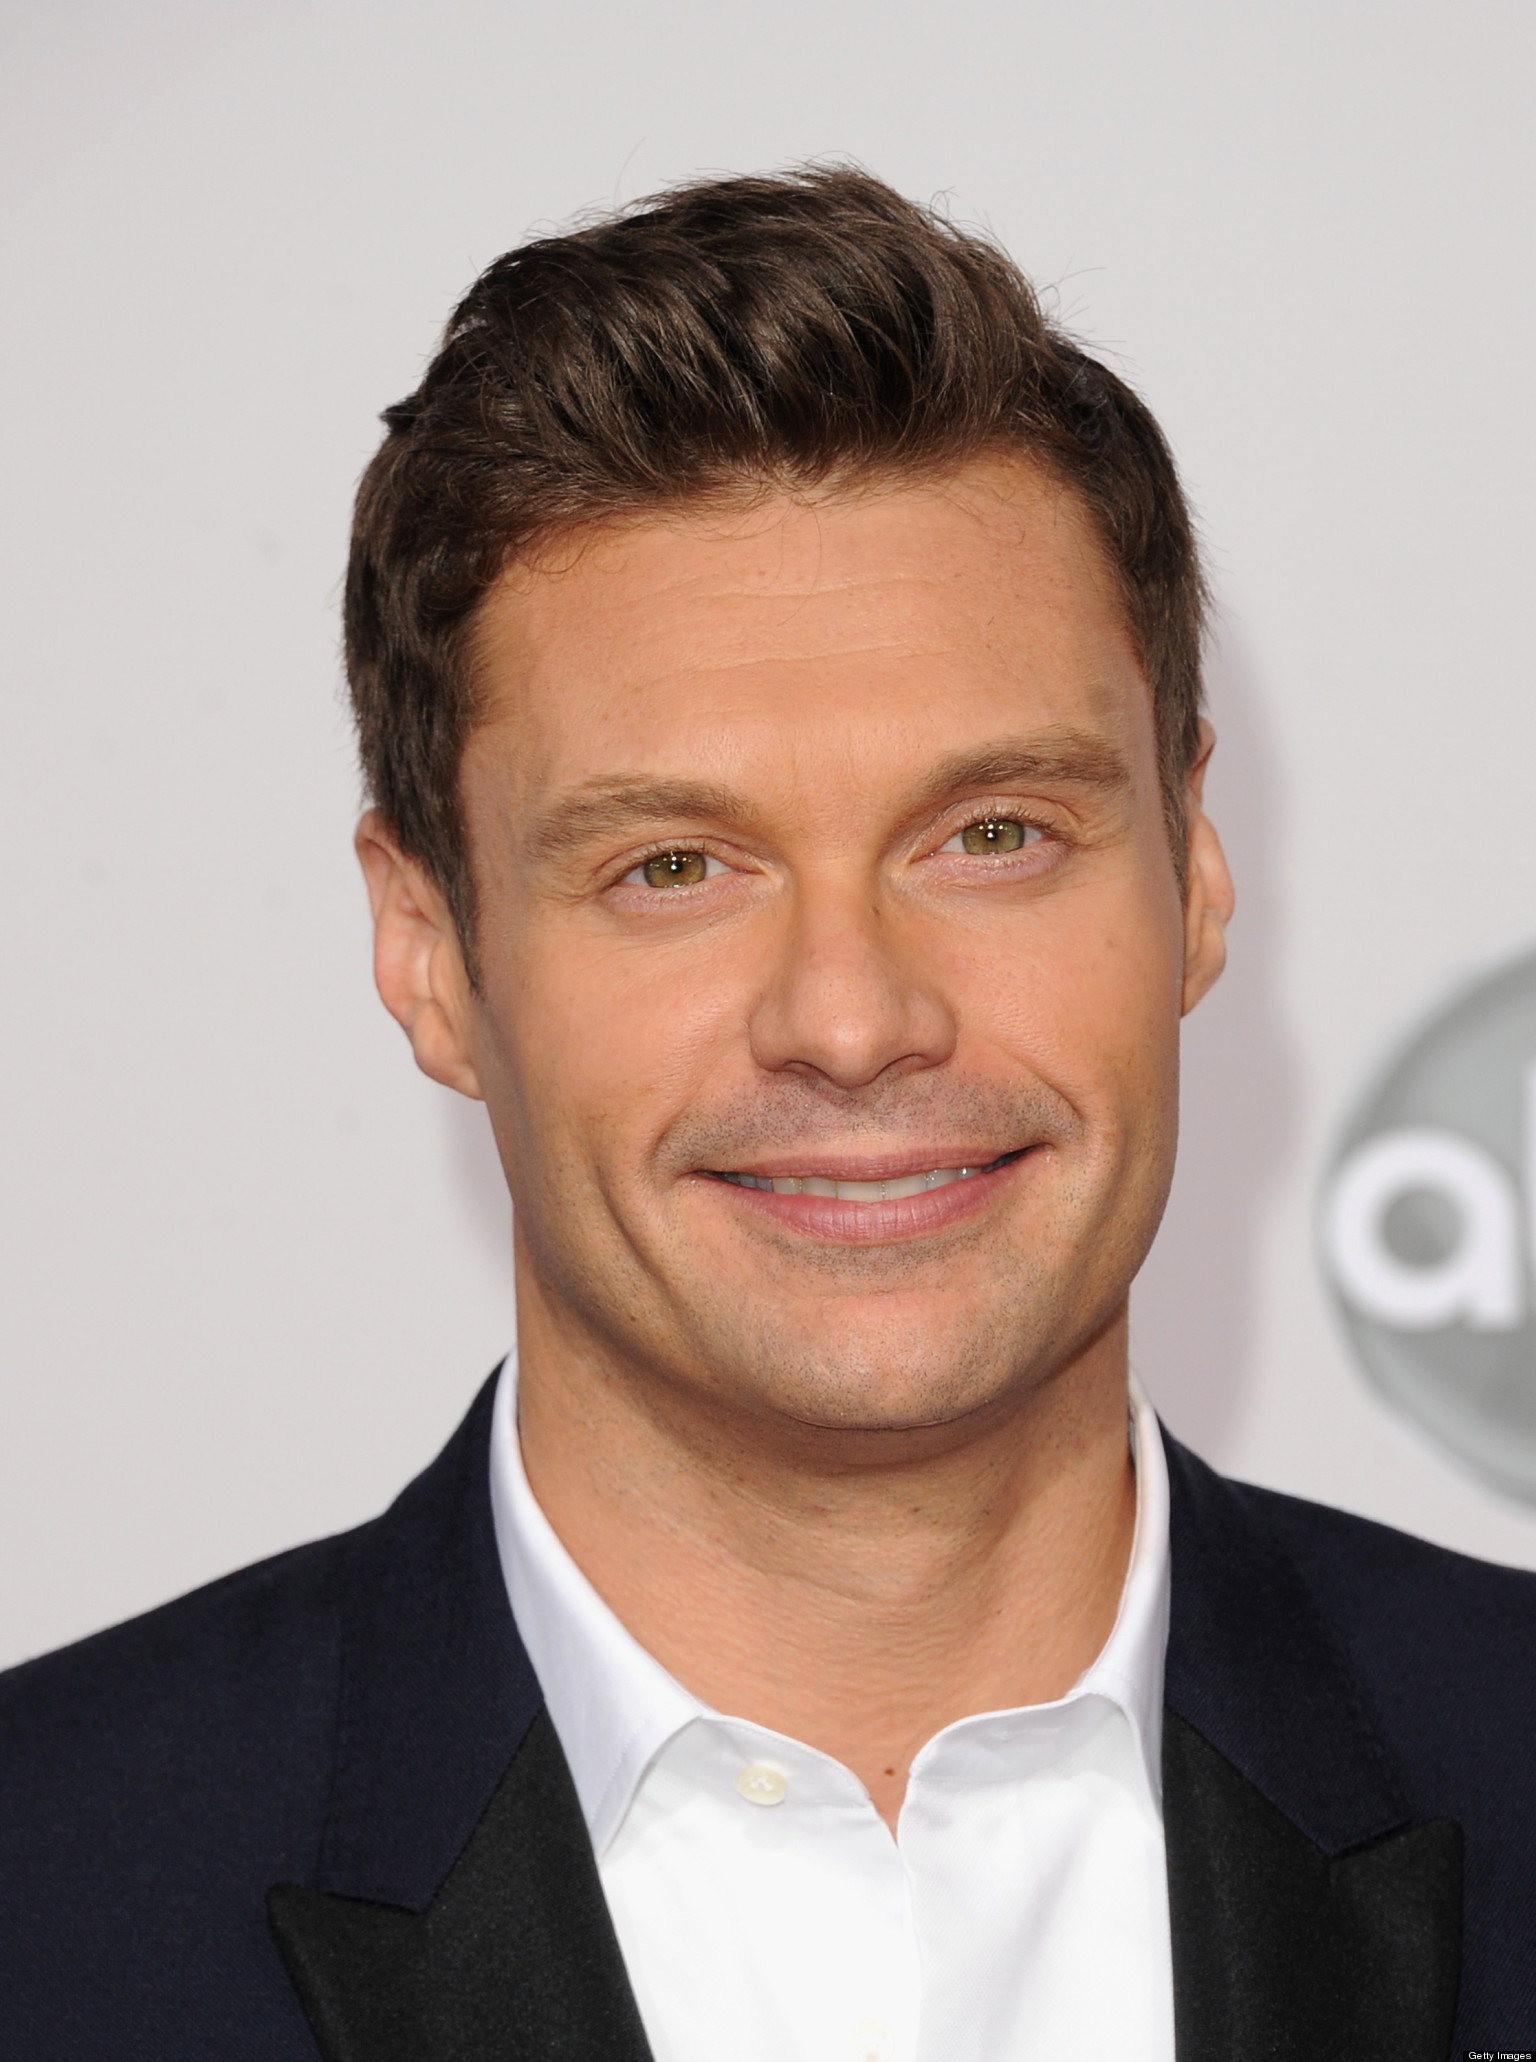 Television host Ryan Seacrest - age: 43